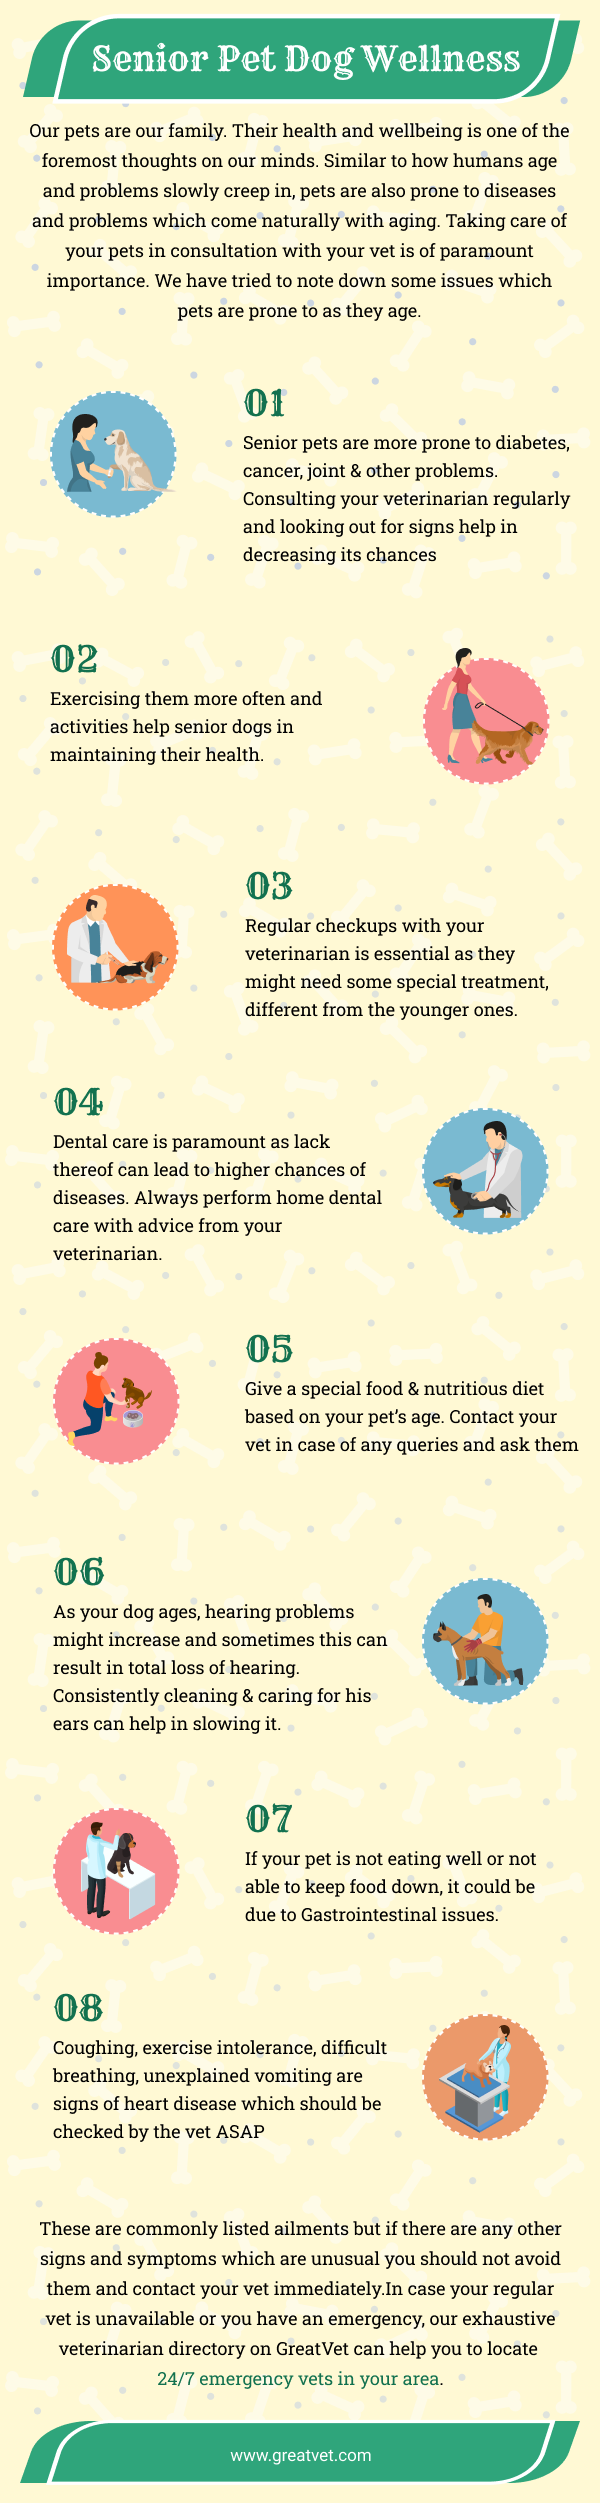 Senior Pet Dog Wellness Infographic - GreatVet